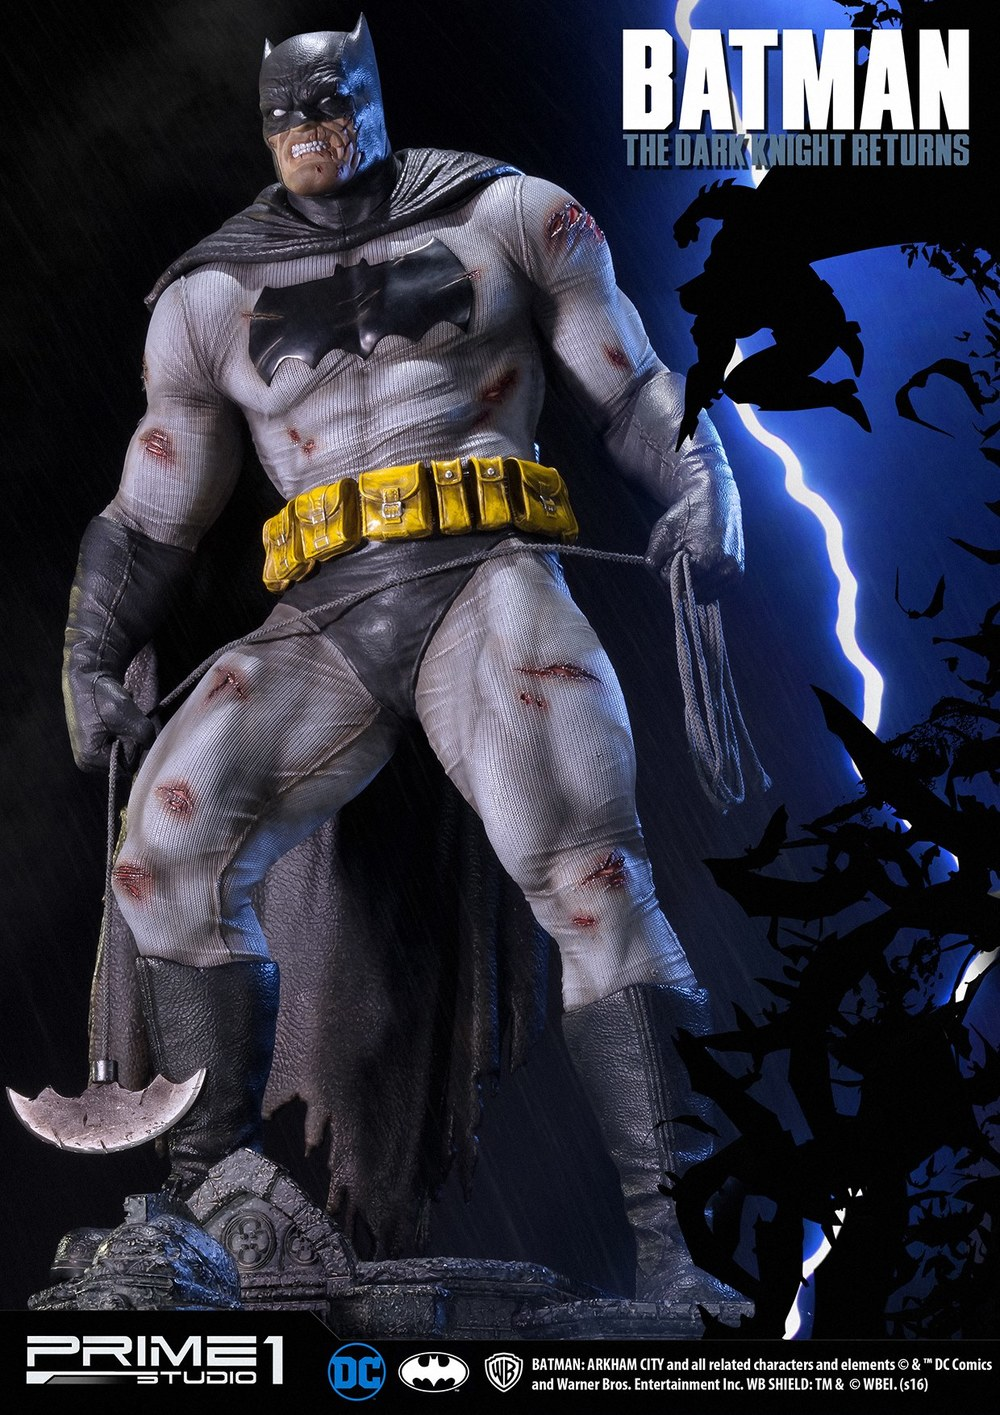 Prime-1-Dark-Knight-Returns-Batman-002.jpg